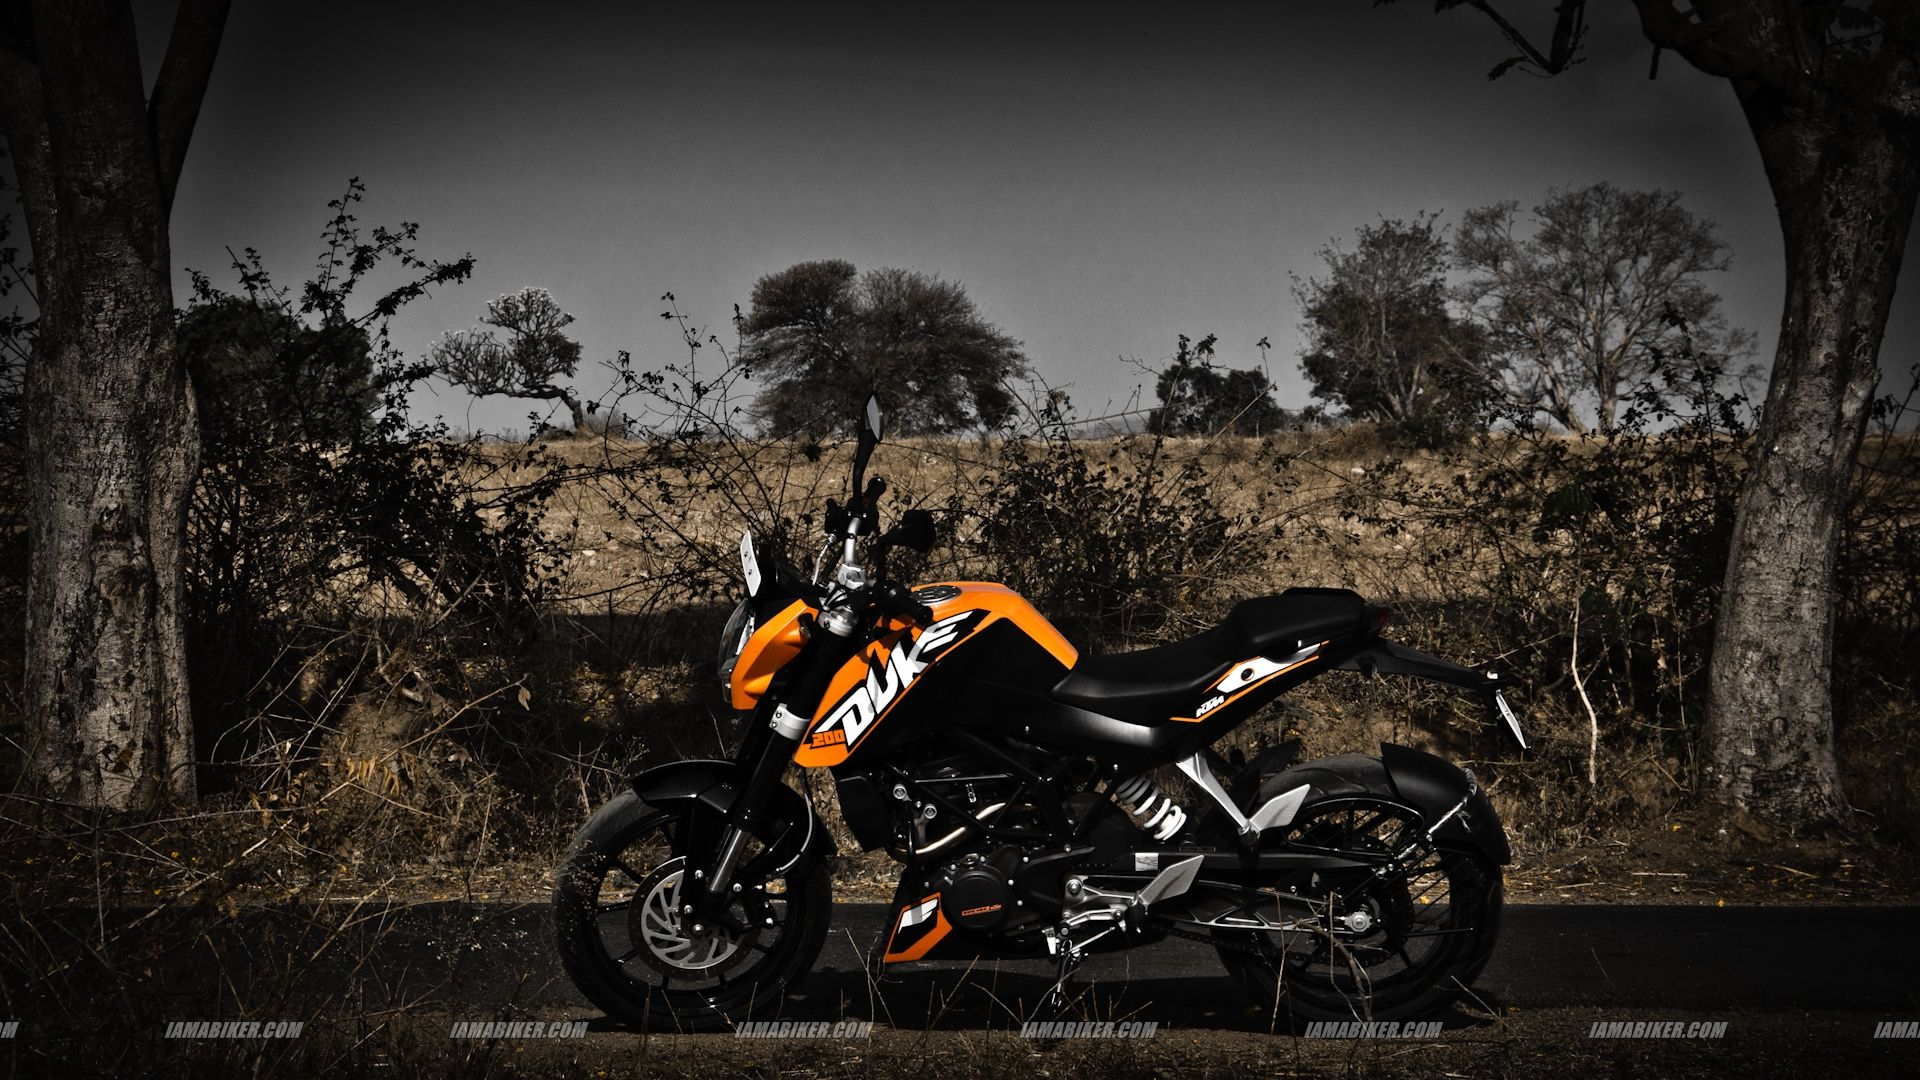 Ktm Bikes Wallpapers Google Search Cool Bikes Cars And Private